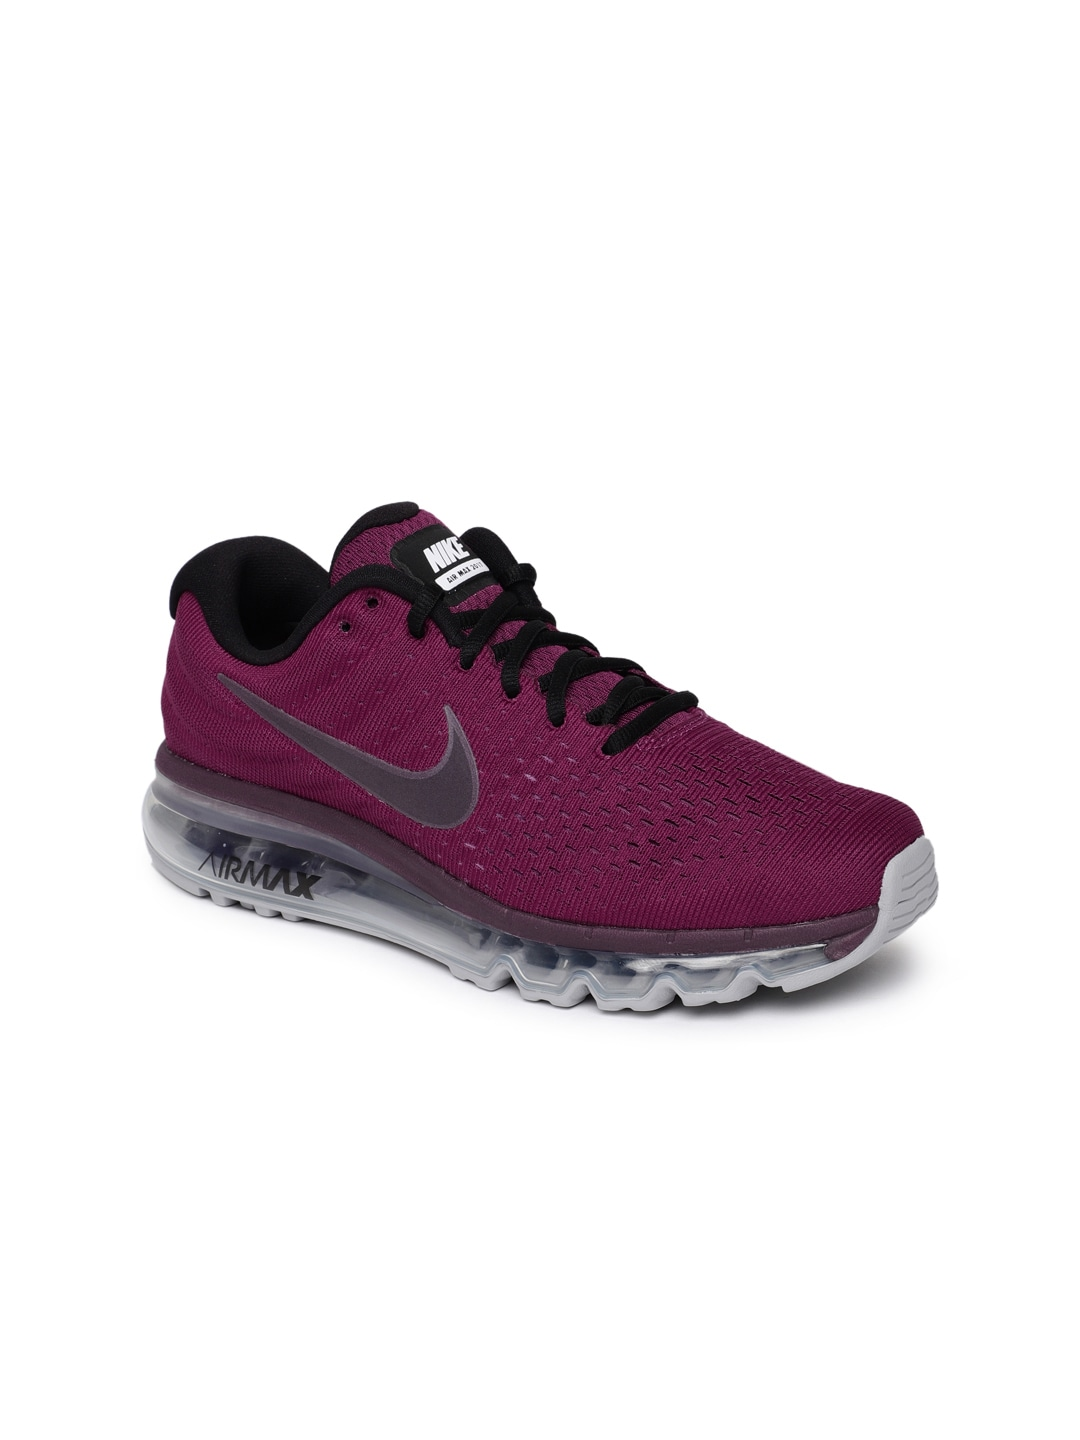 timeless design 5cbac 659fe Nike Shoes - Buy Nike Shoes for Men, Women   Kids Online   Myntra